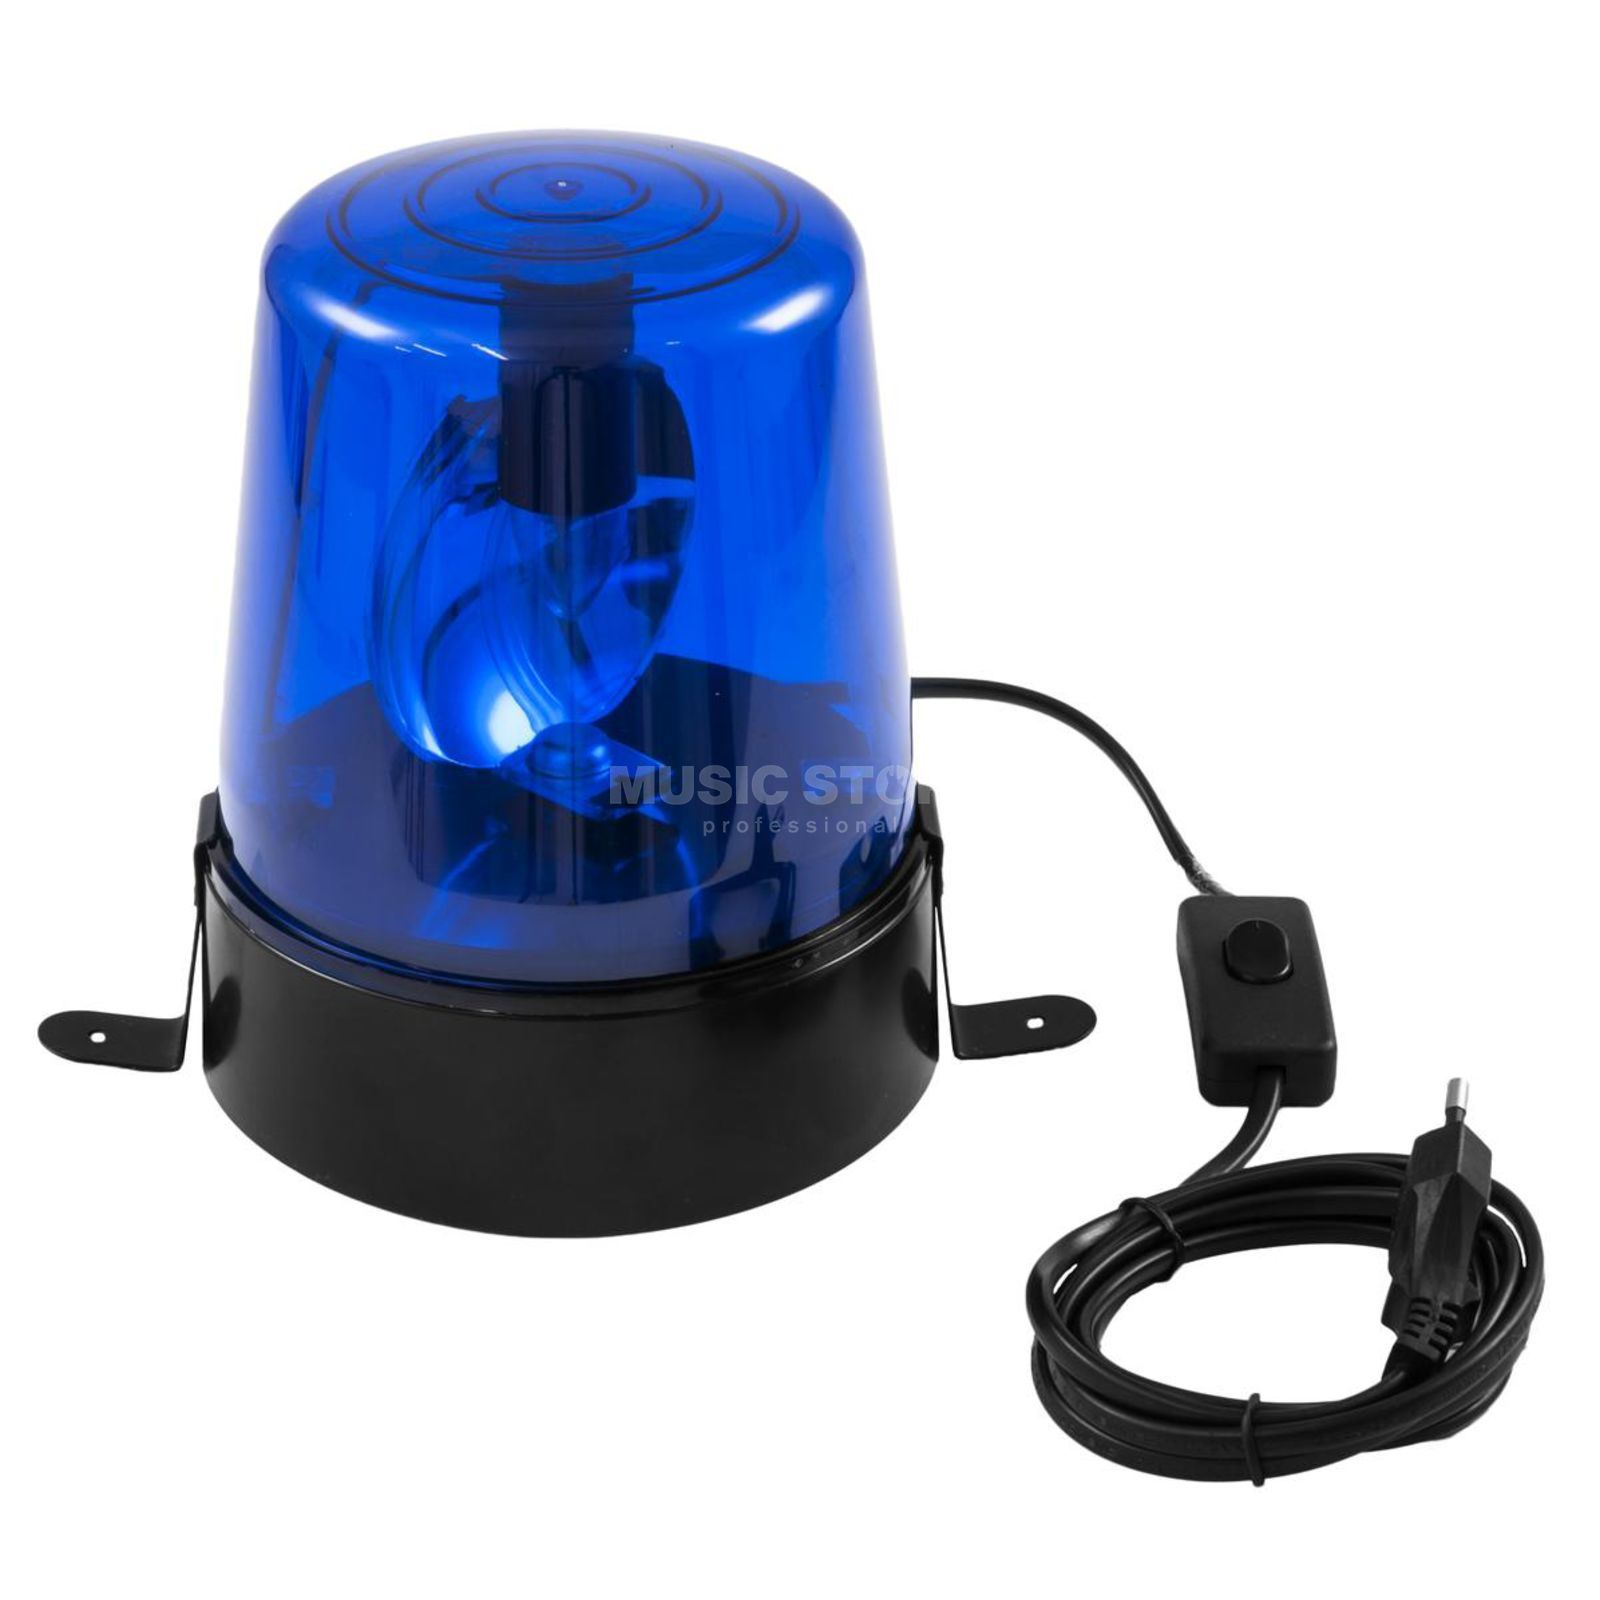 Eurolite Police Light 15 W BLUE incl. Cable & Plug Produktbillede